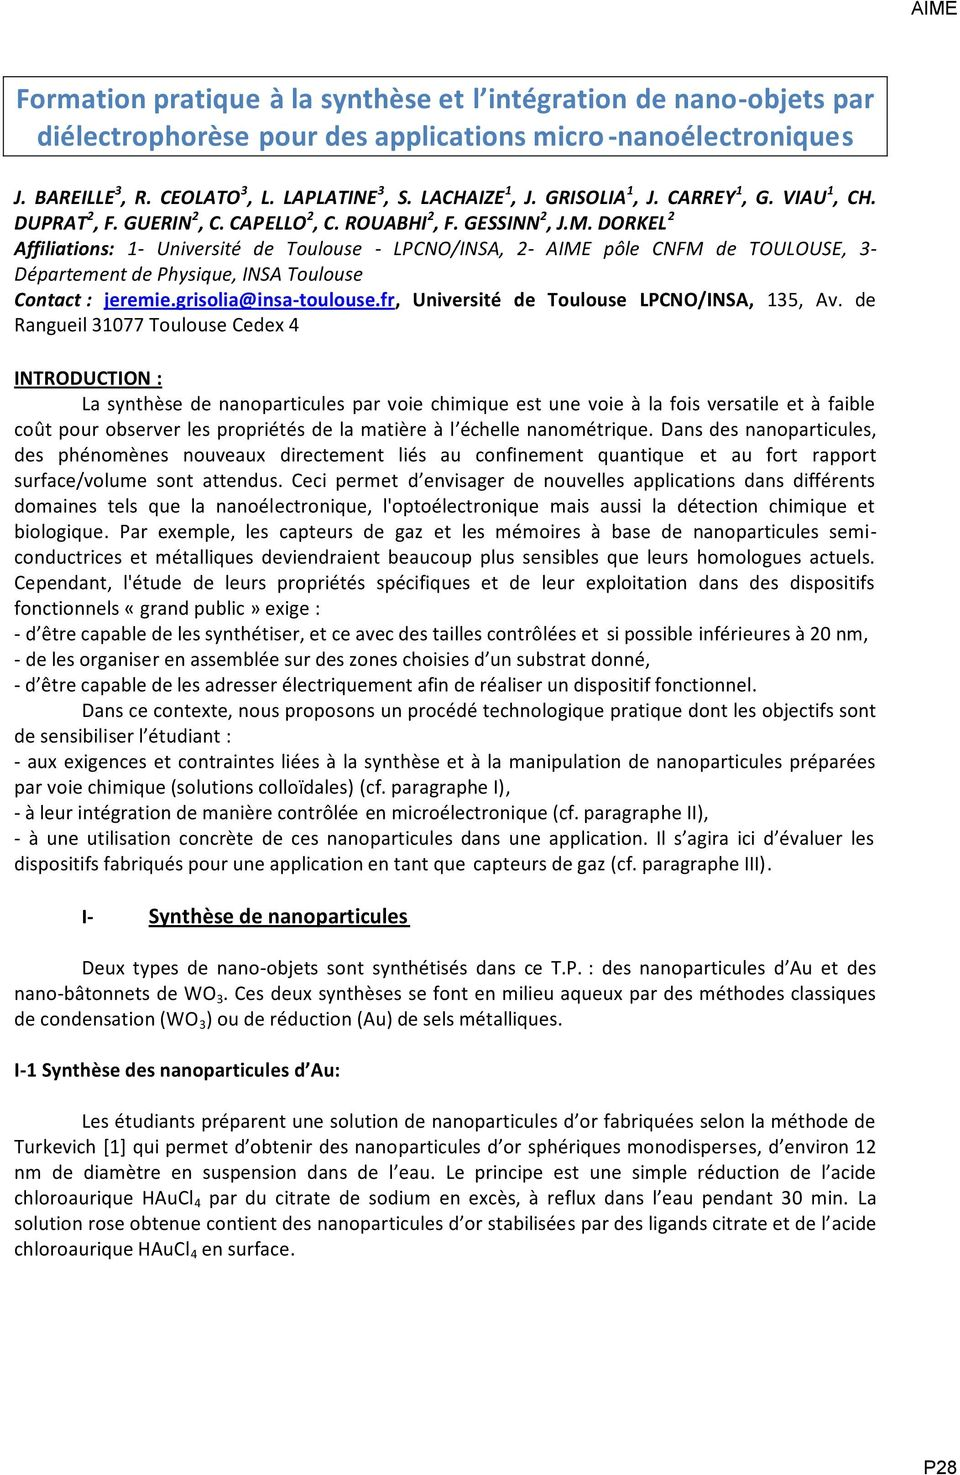 DORKEL 2 Affiliations: 1- Université de Toulouse - LPCNO/INSA, 2- AIME pôle CNFM de TOULOUSE, 3- Département de Physique, INSA Toulouse Contact : jeremie.grisolia@insa-toulouse.